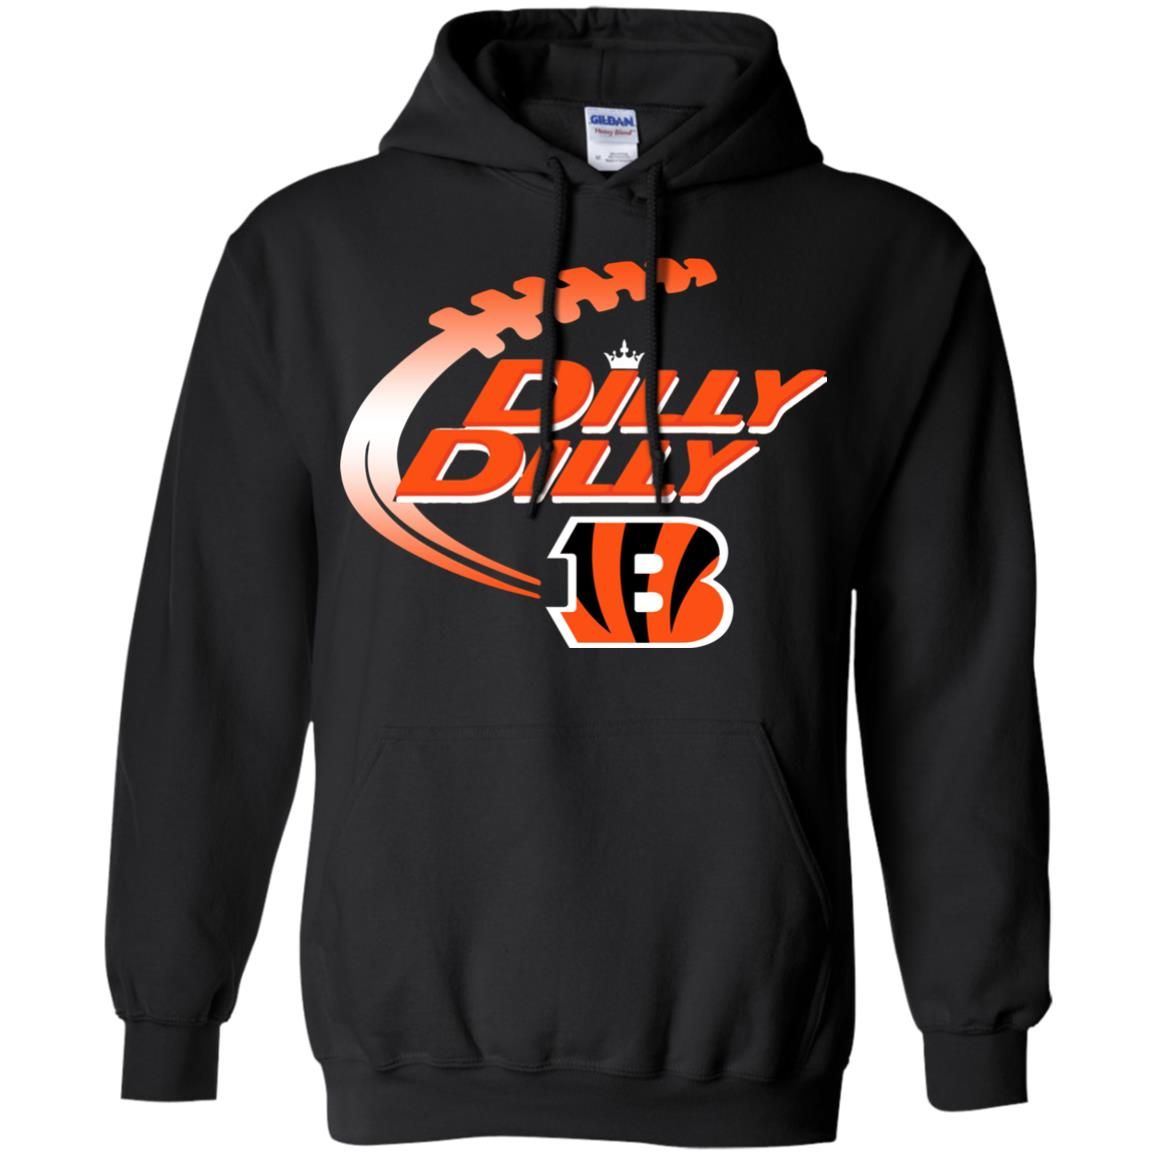 image 1862 - Dilly Dilly Cincinnati Bengals Shirt, Hoodie, Long Sleeve